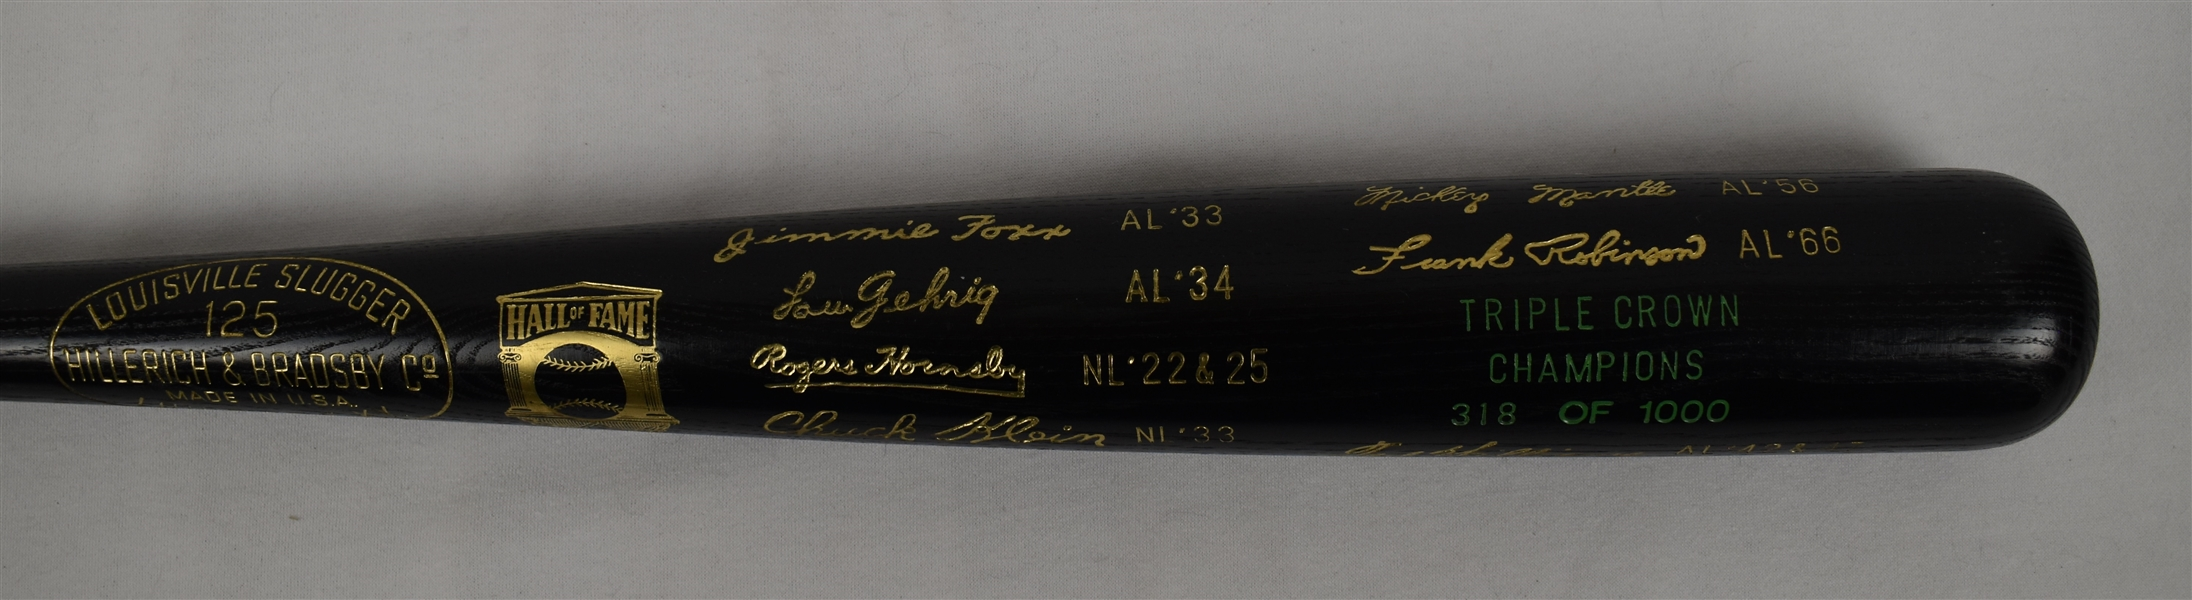 Triple Crown Winners Black Bat